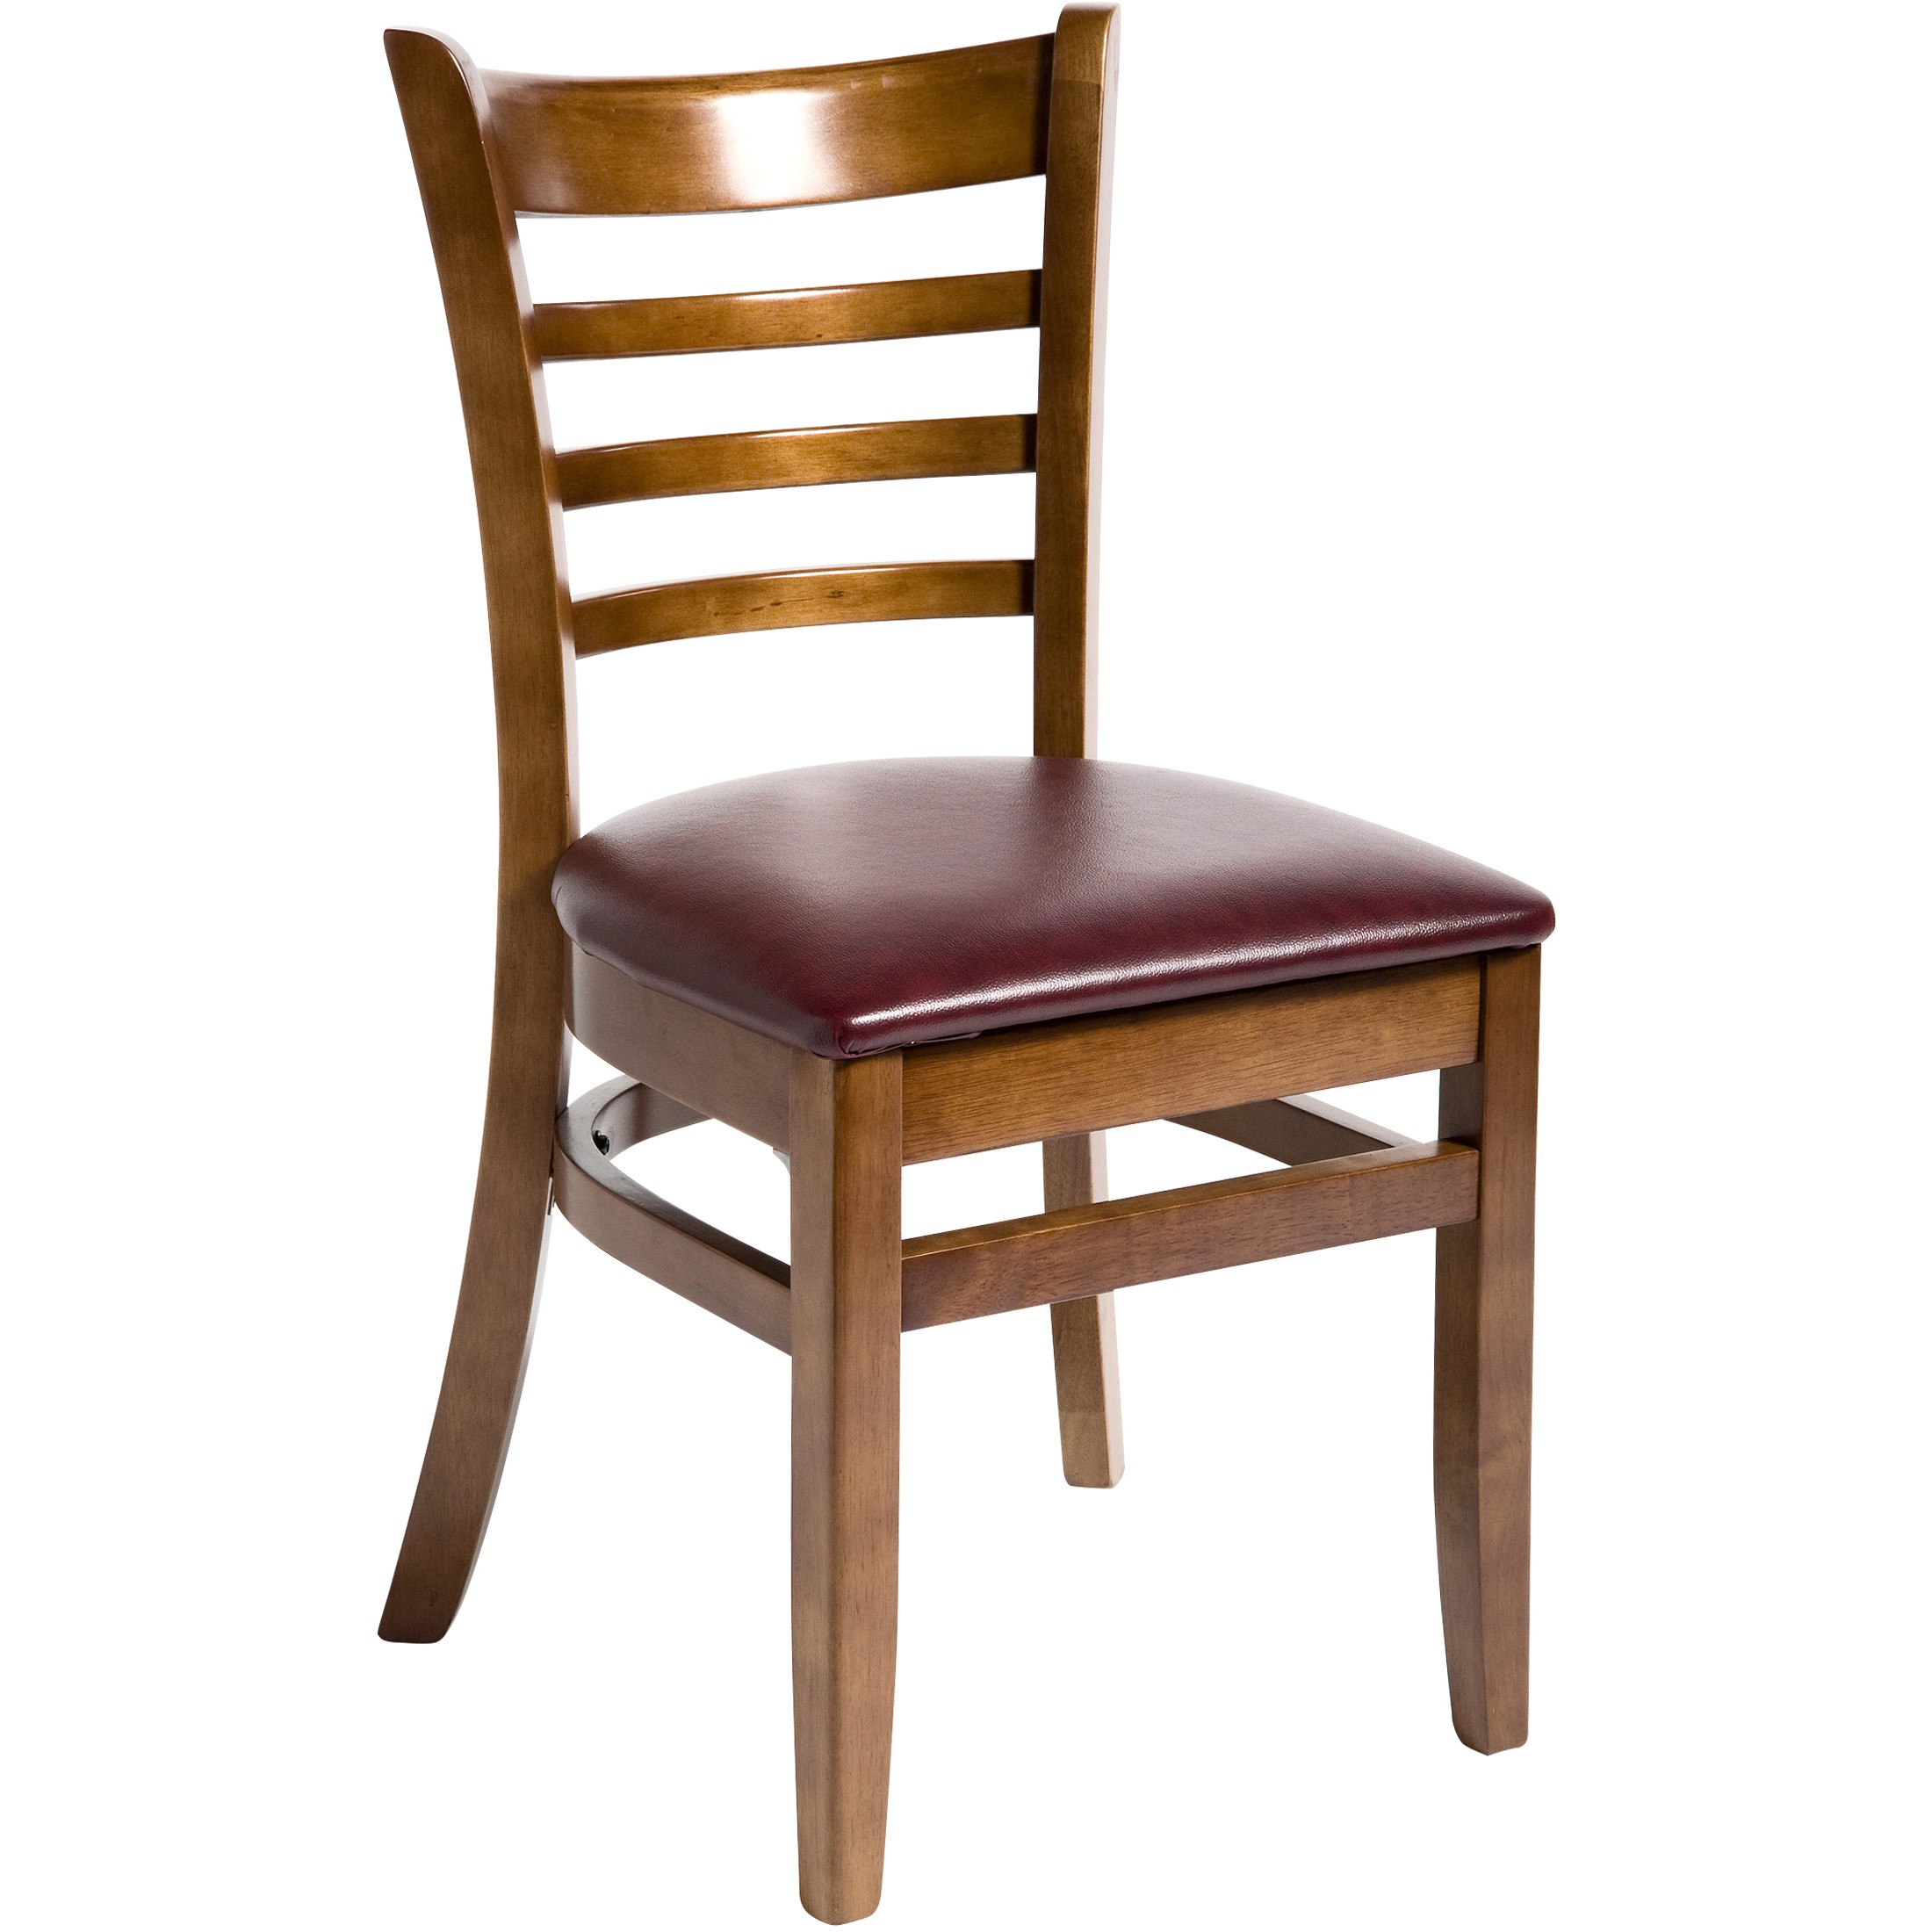 Restaurant furniture for sale in houston tx